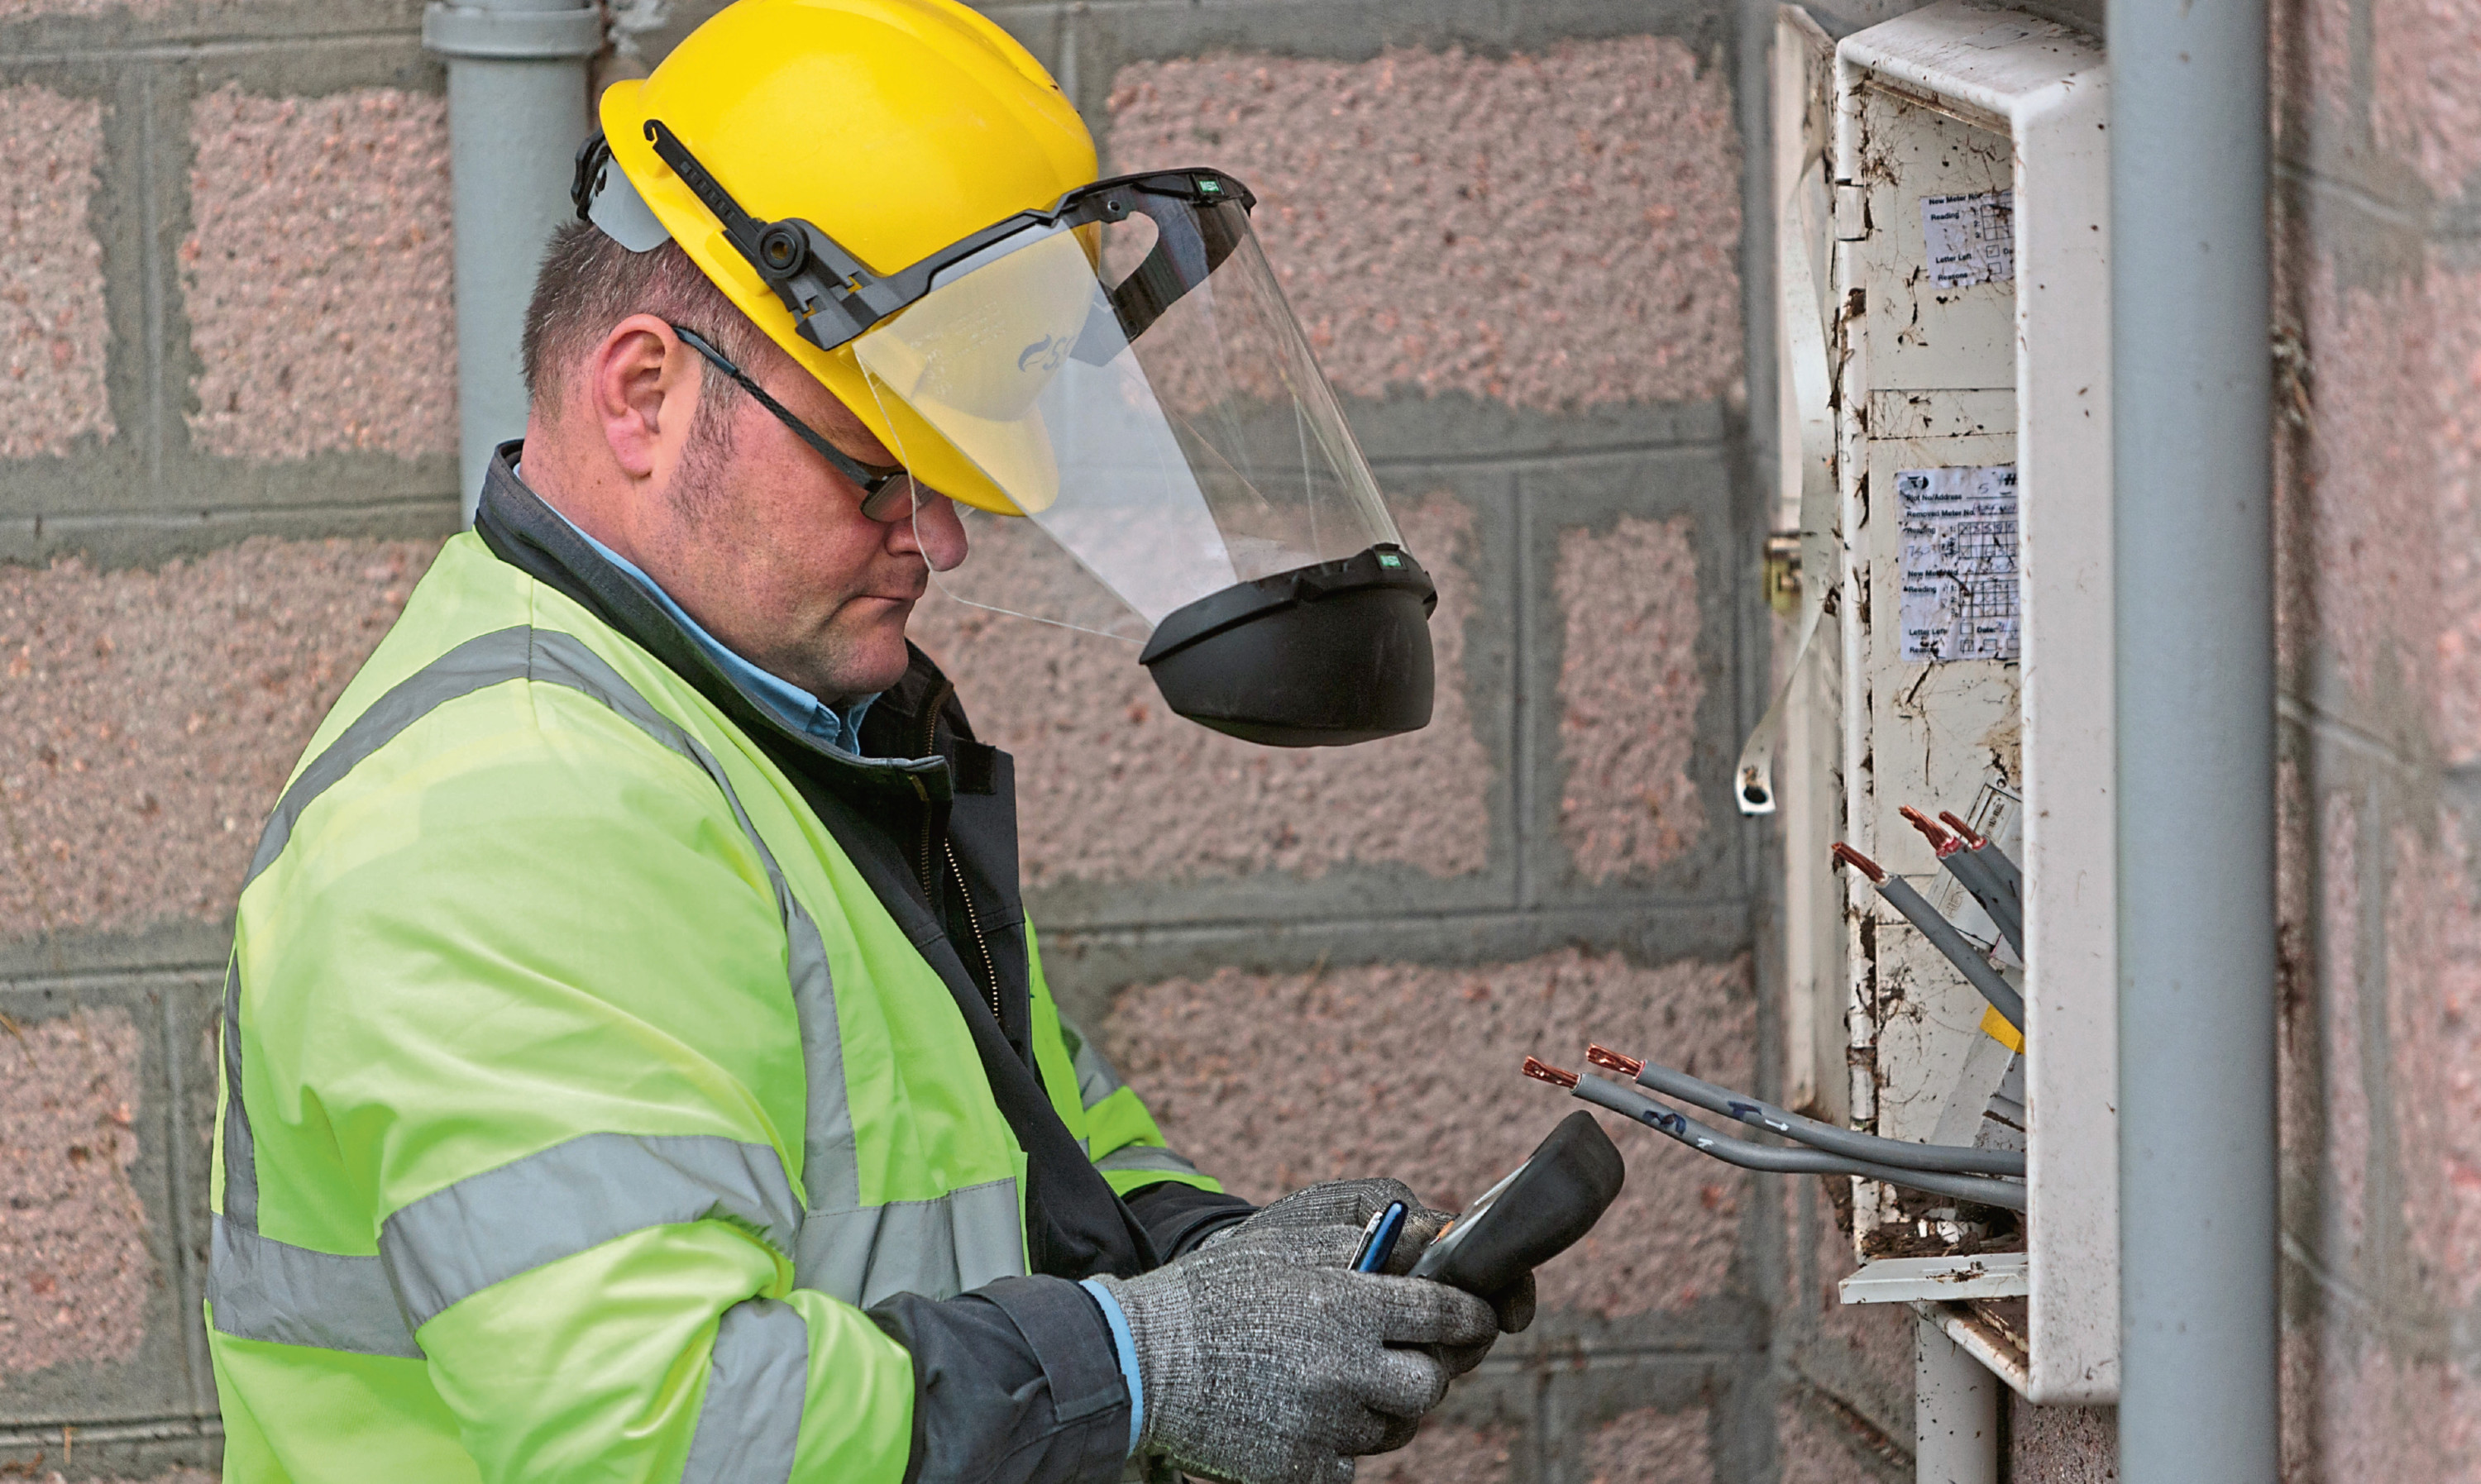 An SSE technician works on a household supply connection.